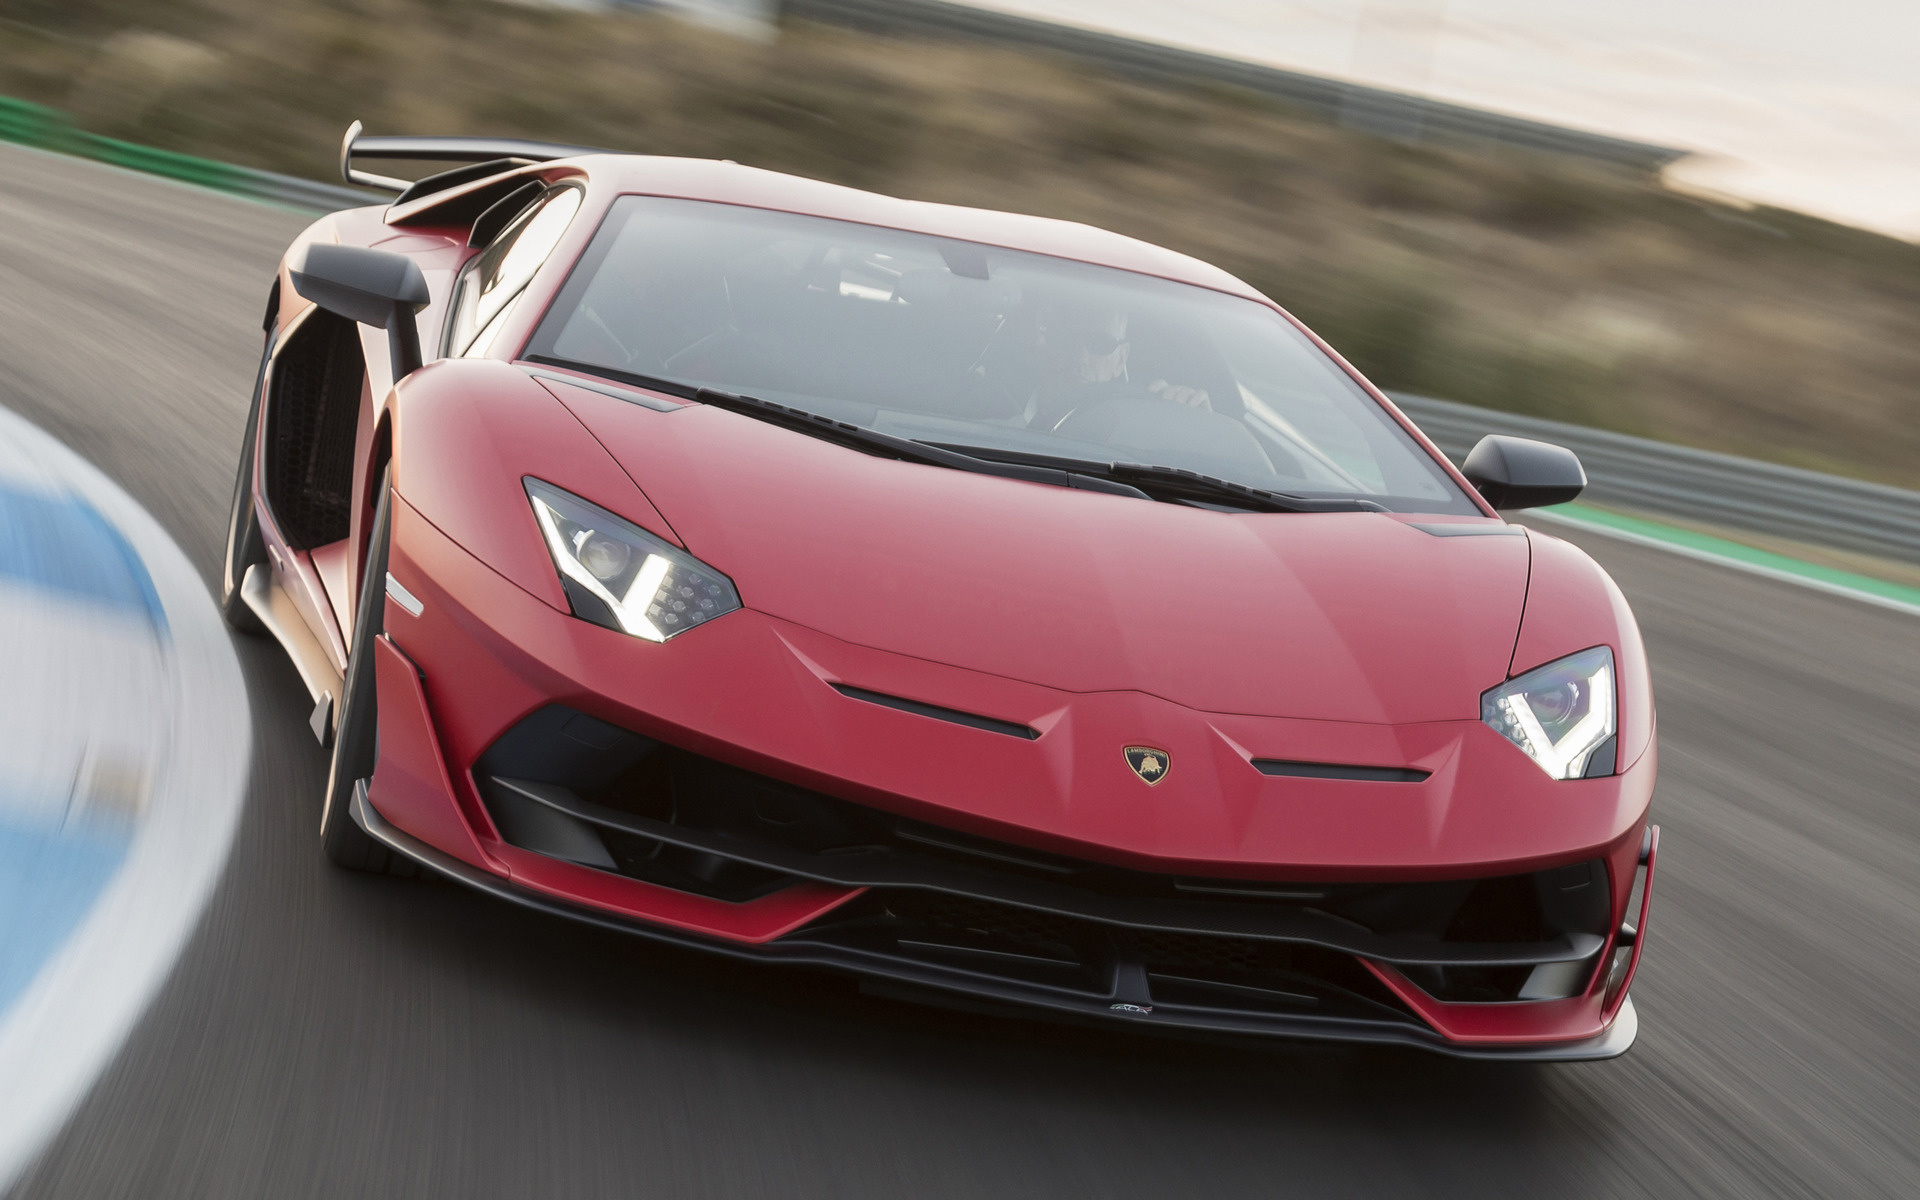 2018 Lamborghini Aventador Svj Wallpapers And Hd Images Car Pixel